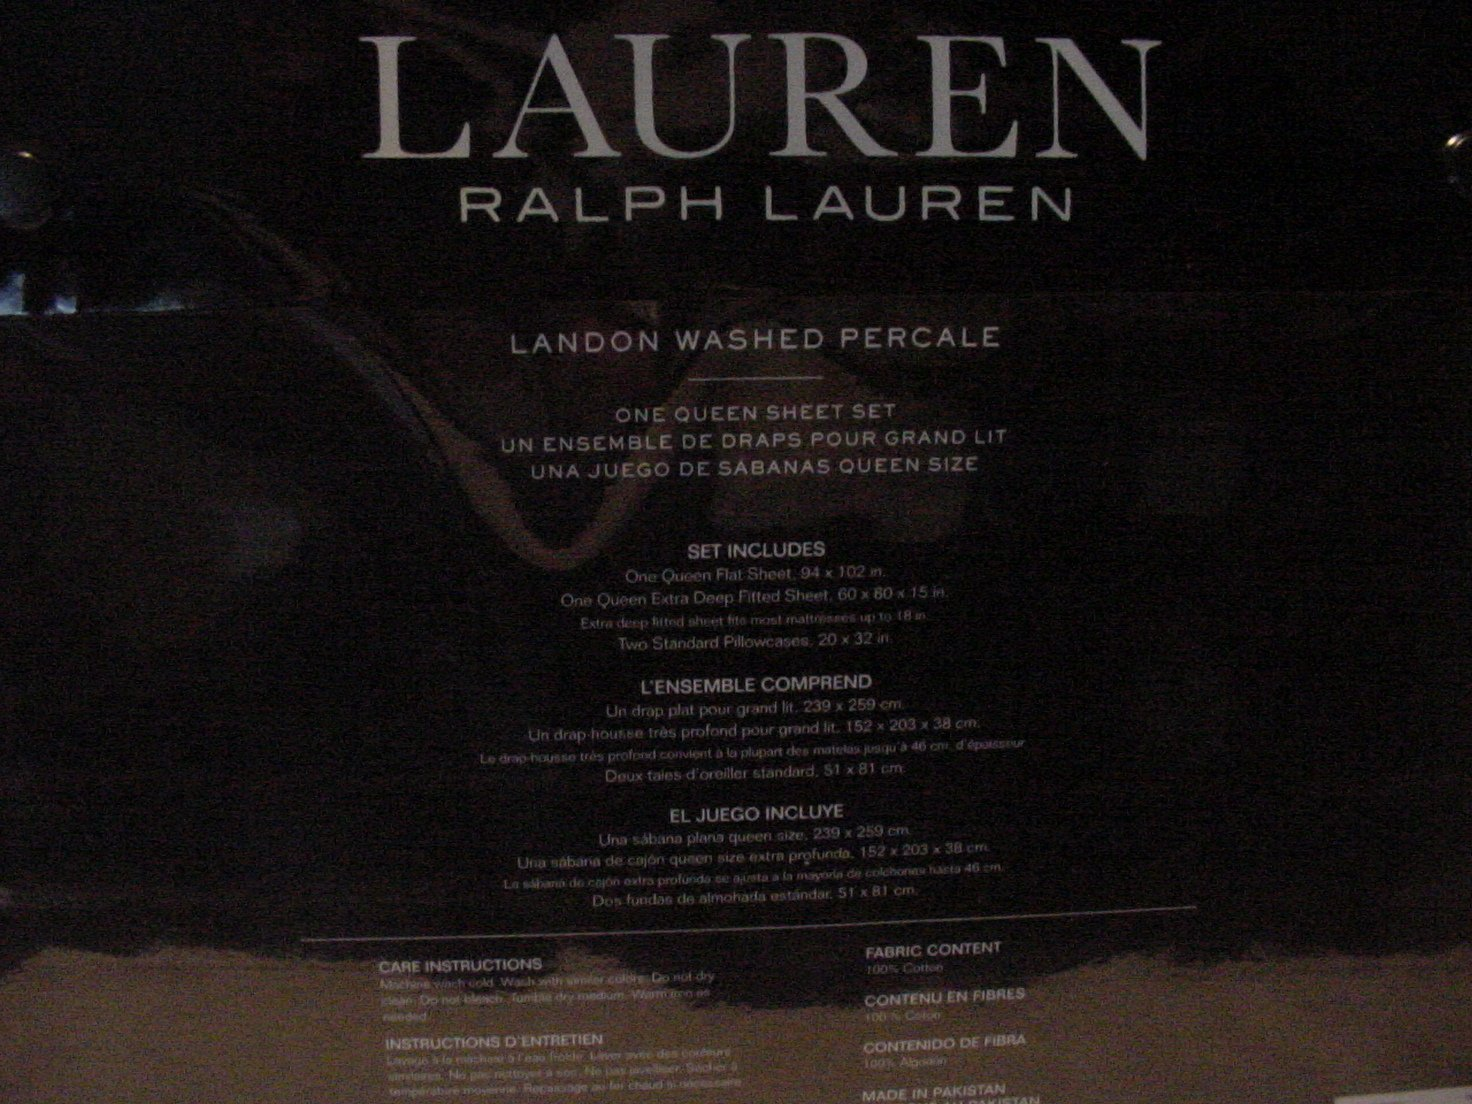 Amazon.com: Ralph Lauren Landon Washed Percale White Sheet Set Queen: Home & Kitchen